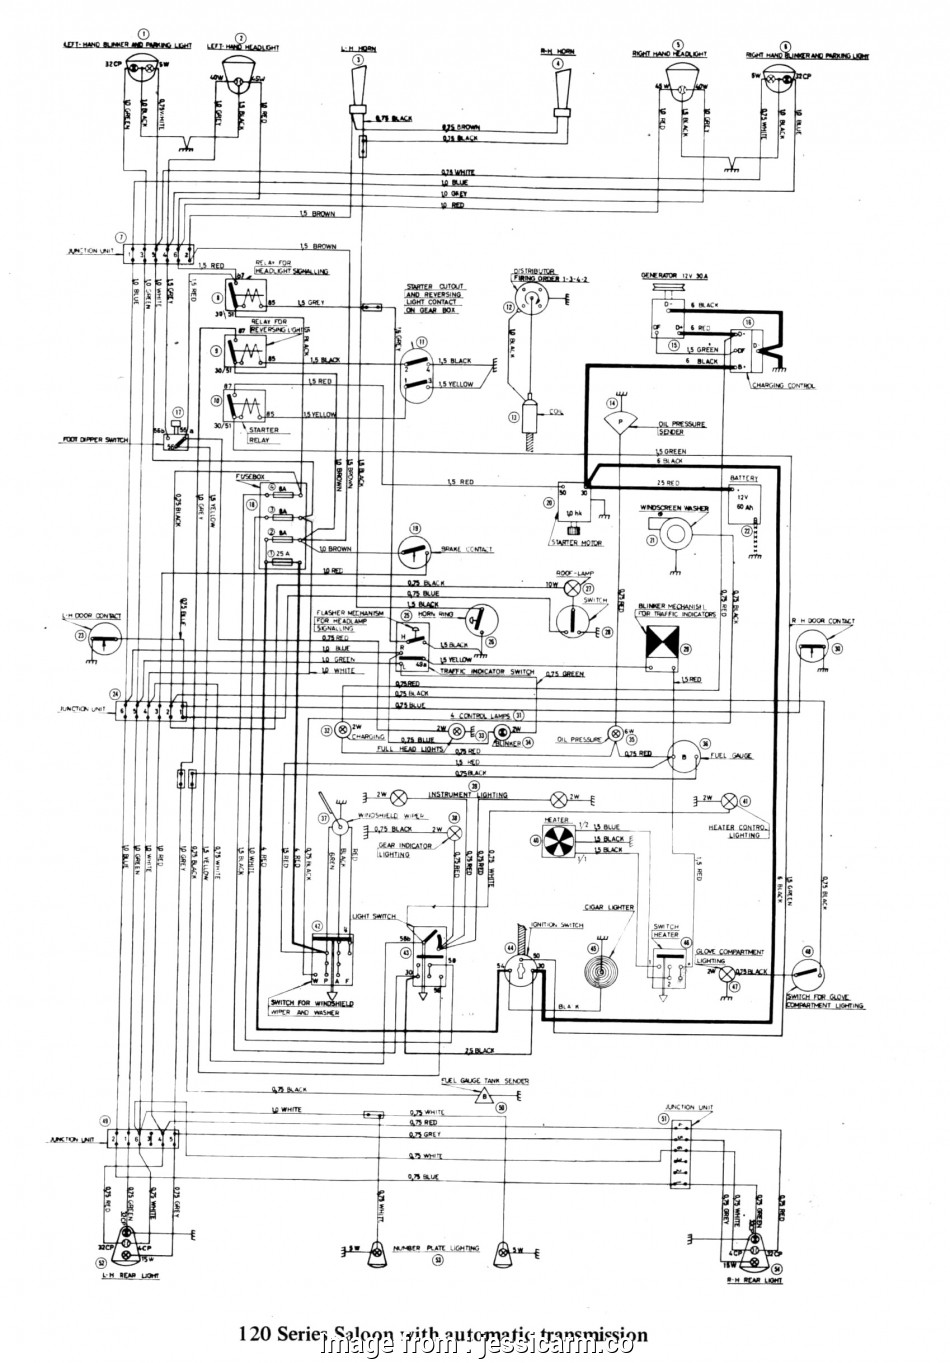 Electrical Wiring Diagram Volvo 940 Cleaver 2004 Volvo Xc90 Wiring  Electrical Wiring Diagrams